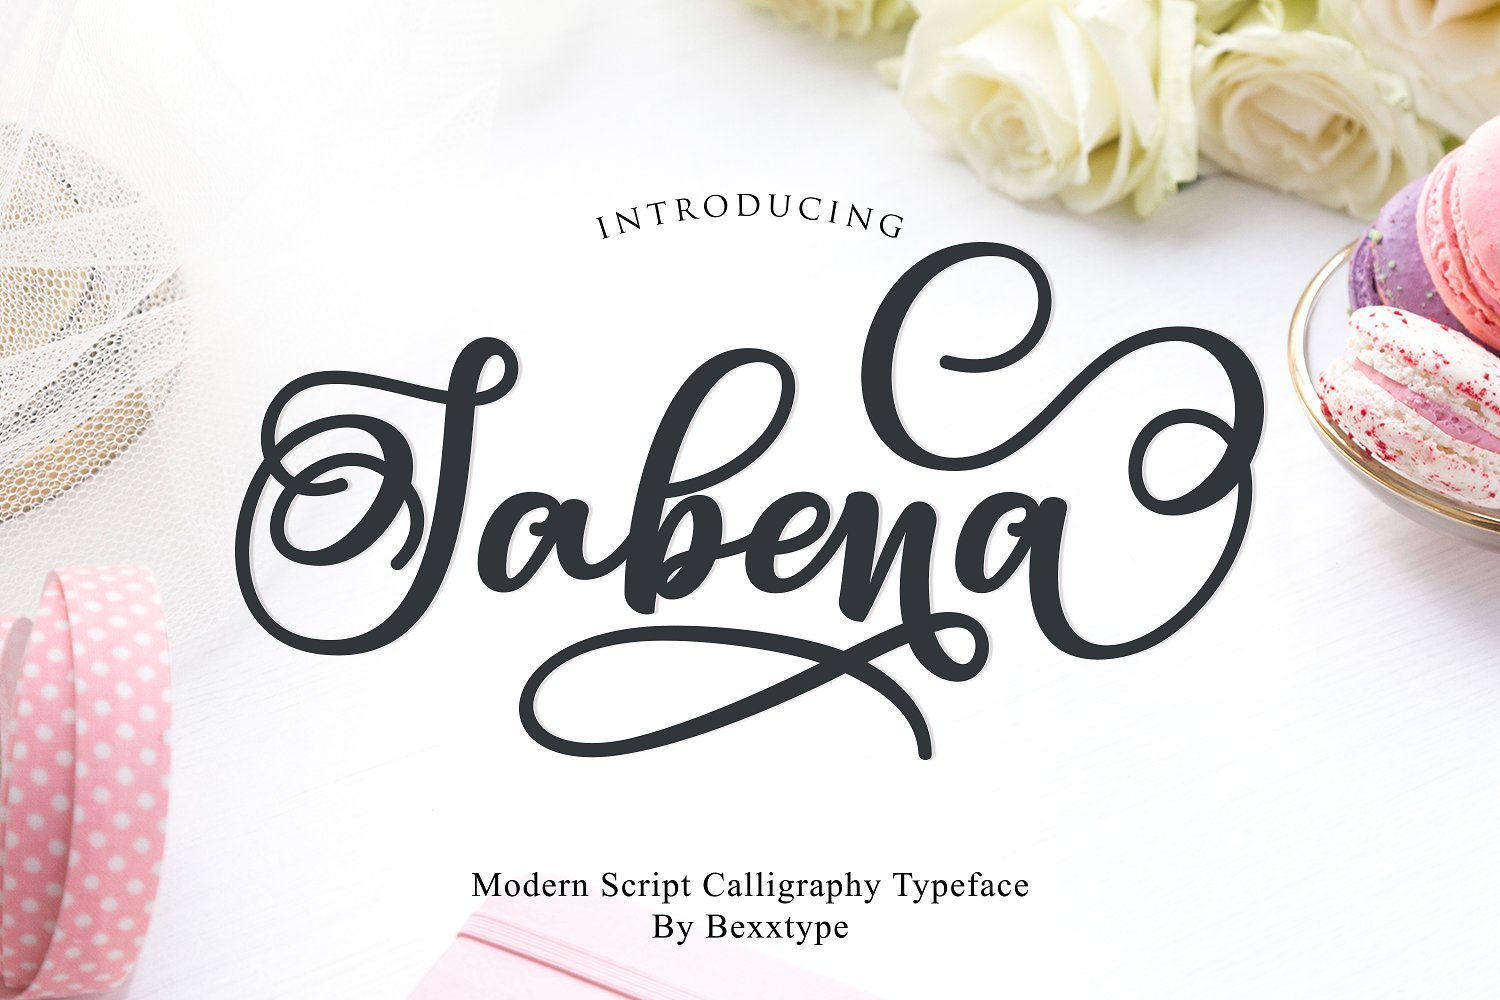 https://fontclarity.com/wp-content/uploads/2019/09/sabena-calligraphy-font-download-0.jpg Free Download